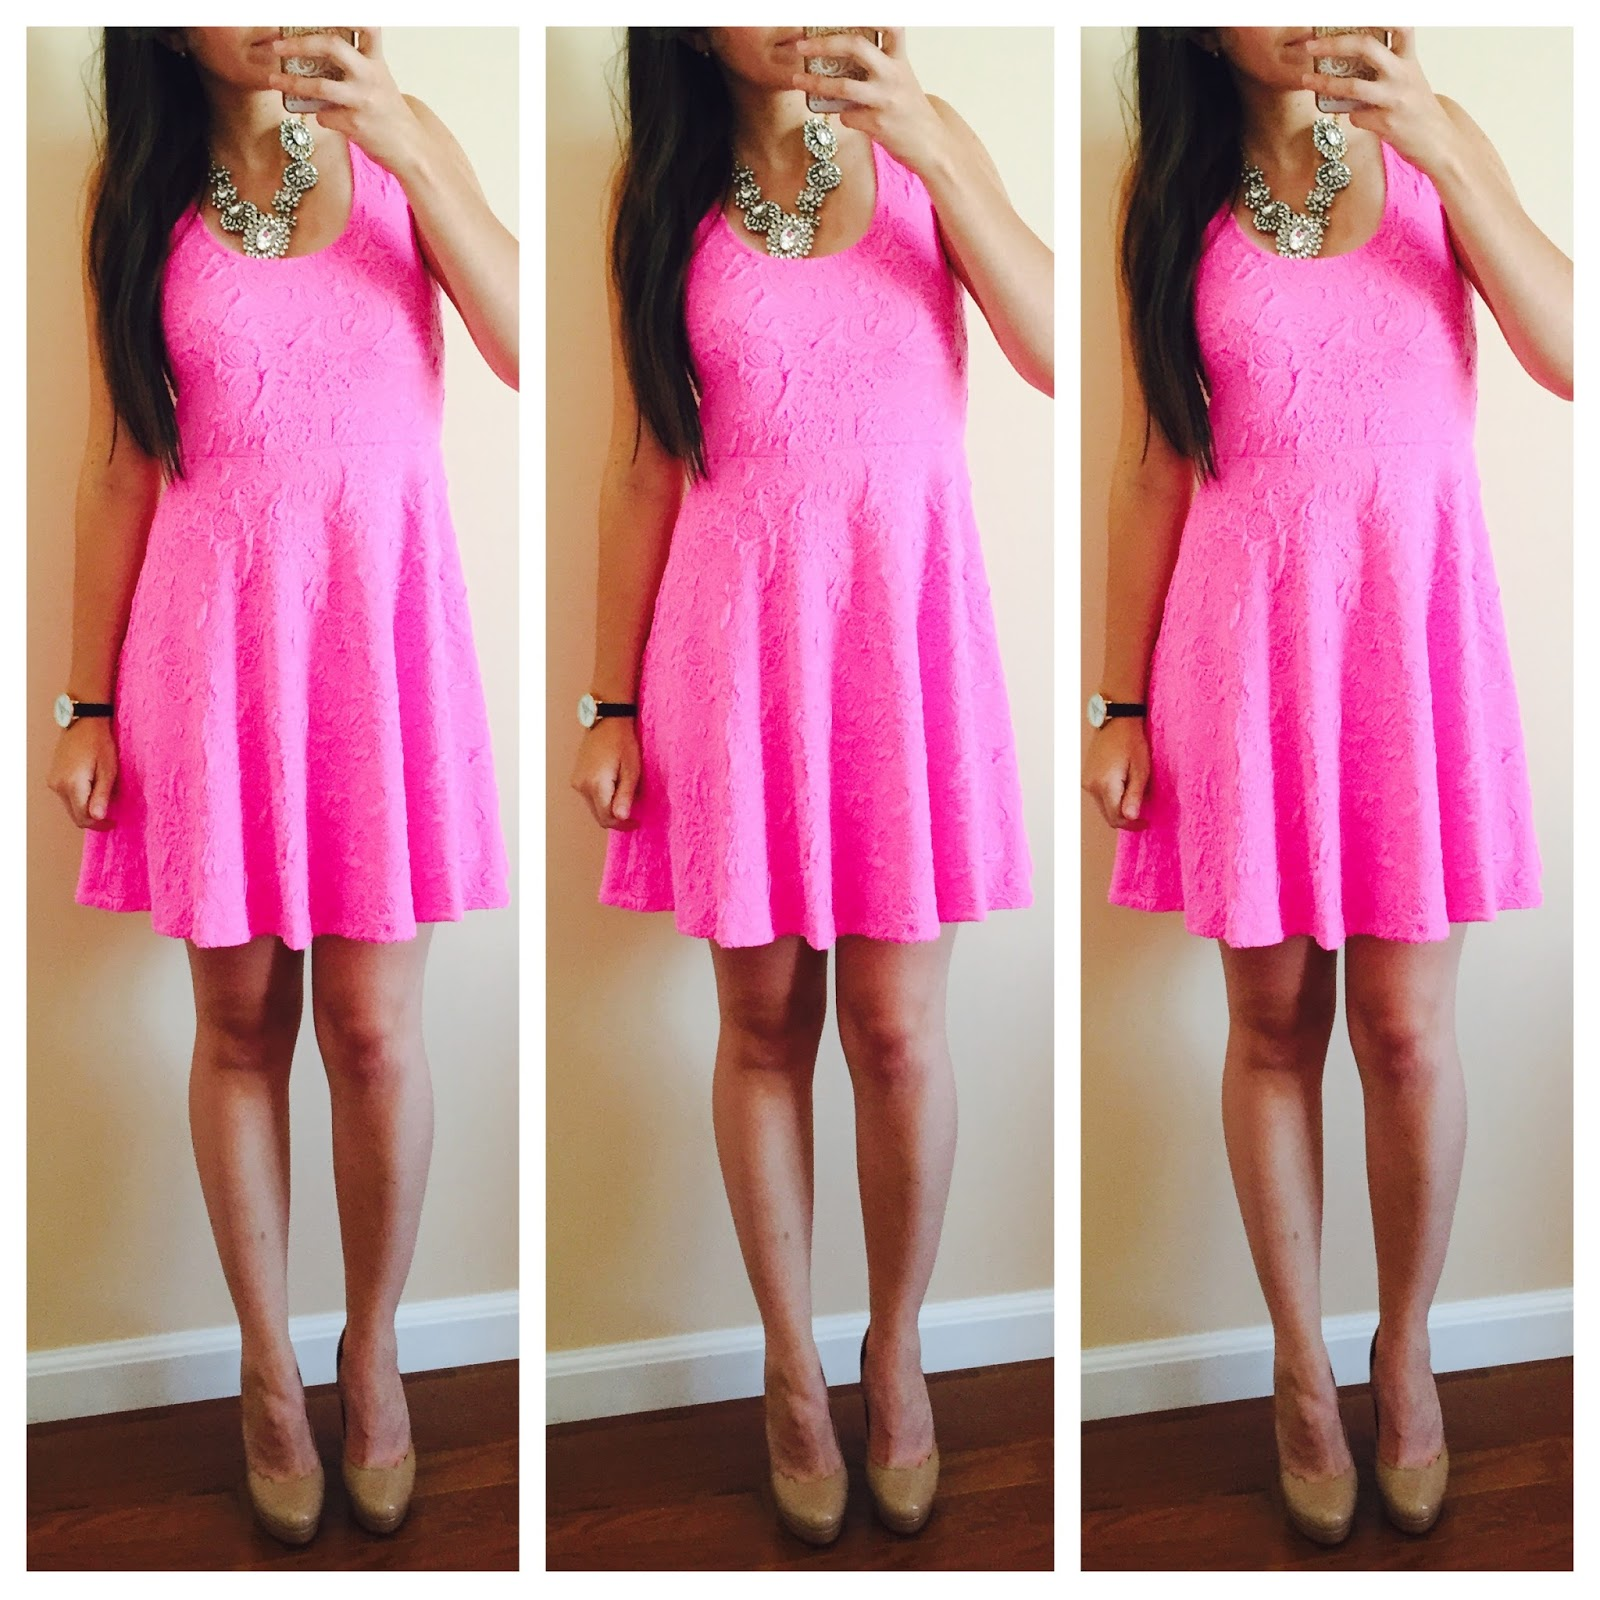 20 ways to style a pink dress, pink blush, pink textured dress, nude heels, pink dress with nude heels, necklace